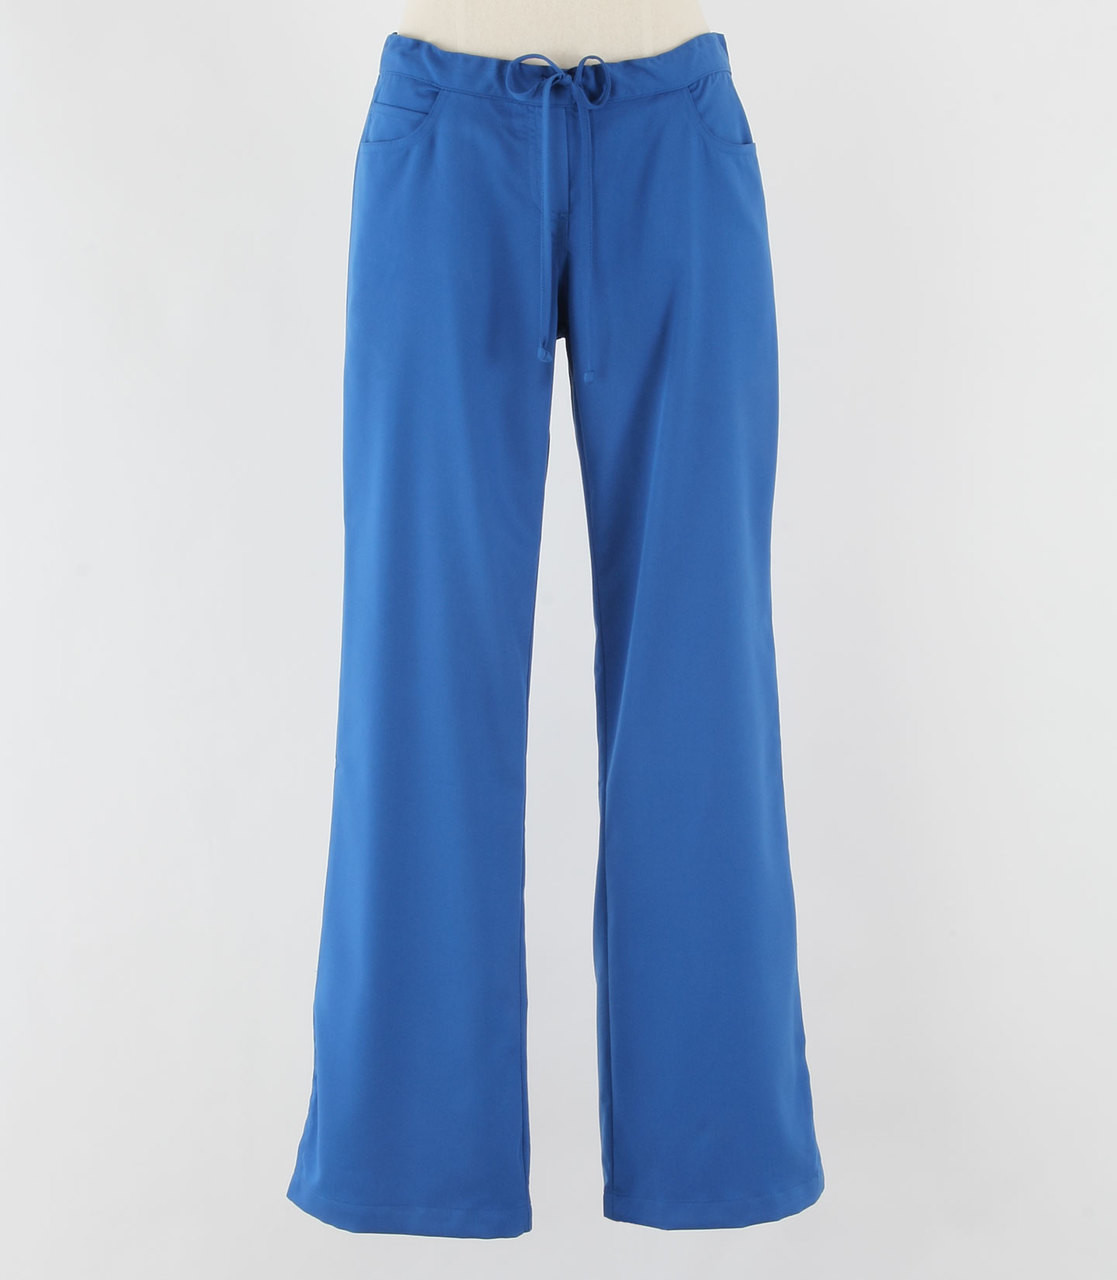 Greys Anatomy Womens Scrub Pants New Royal - Scrub Med